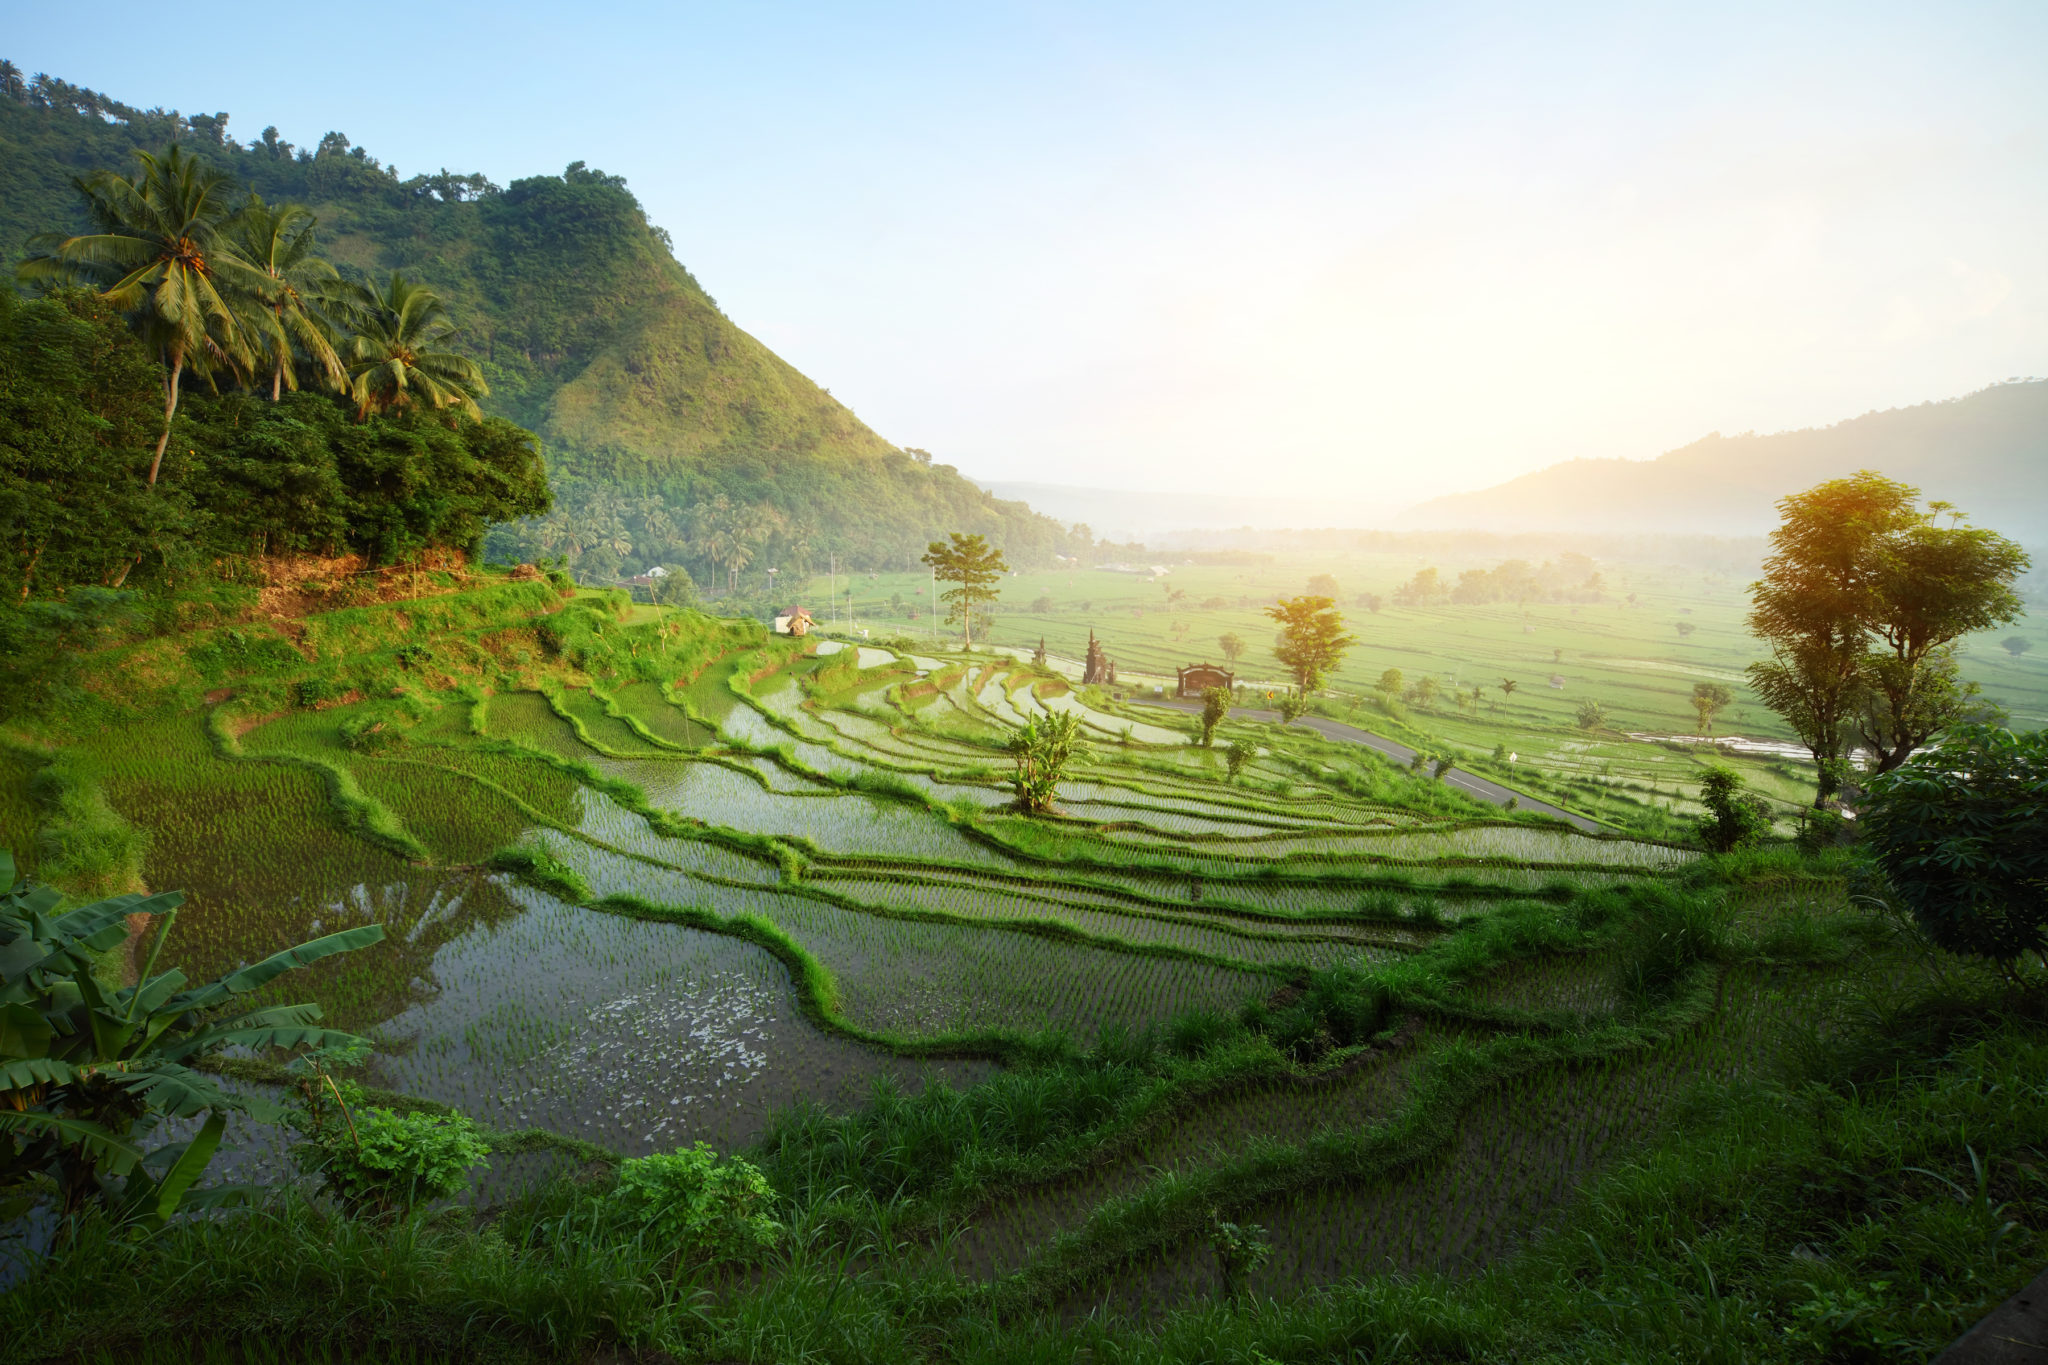 southeast asia travel packages. Discover Real Asia with DLI Travel.